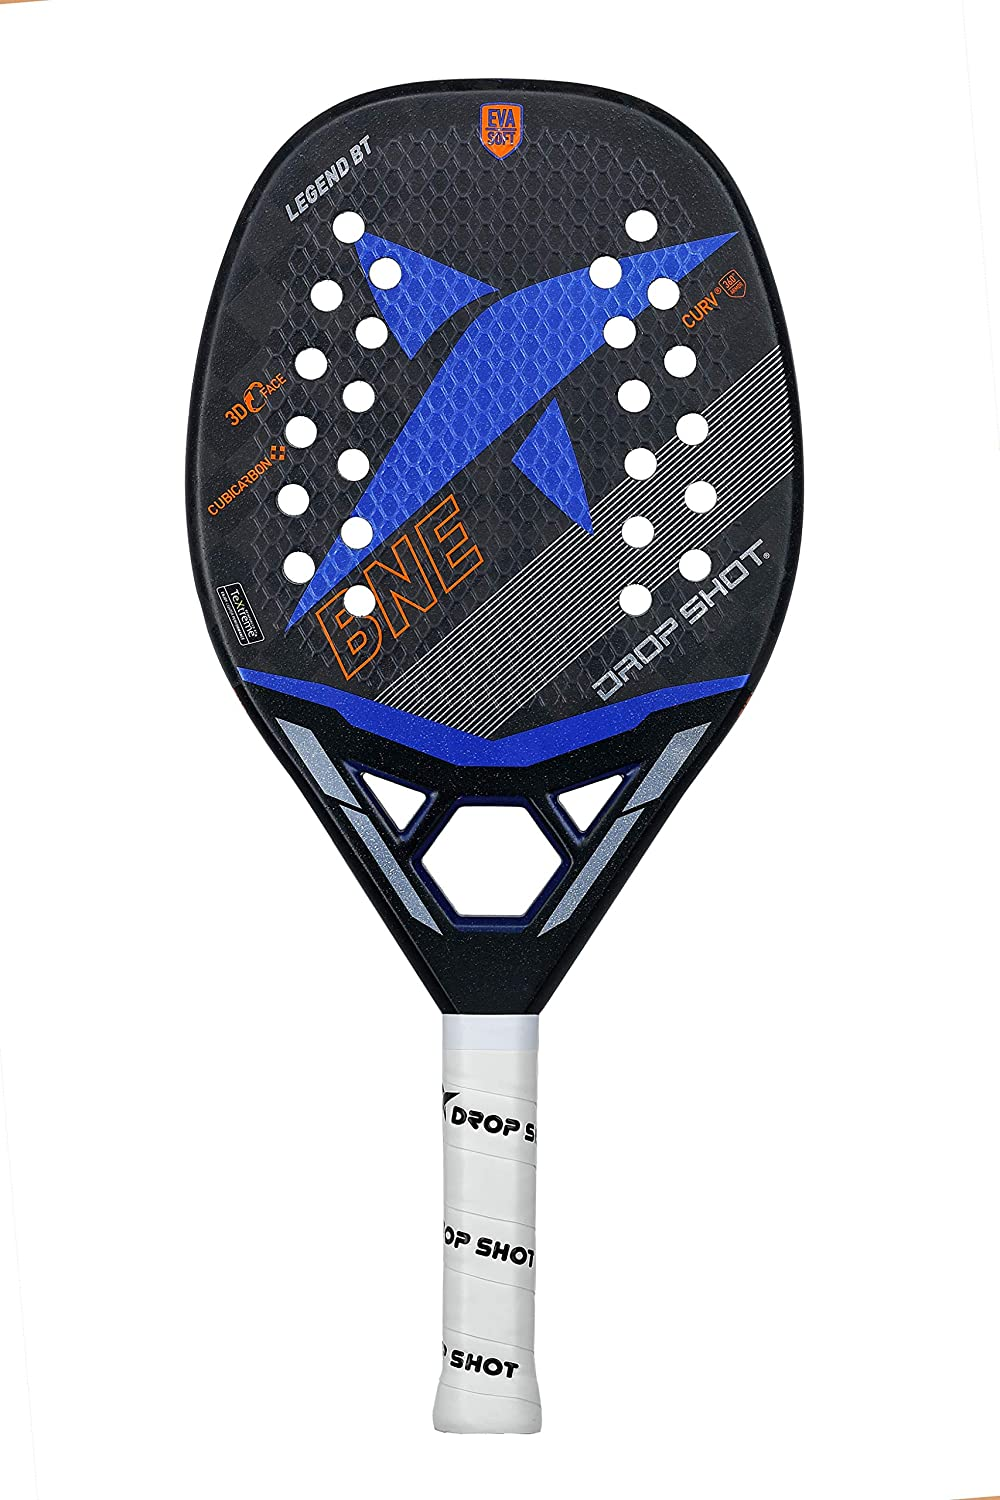 DROP SHOT Pala de pádel Modelo Legend Beach Tennis-Colección ...